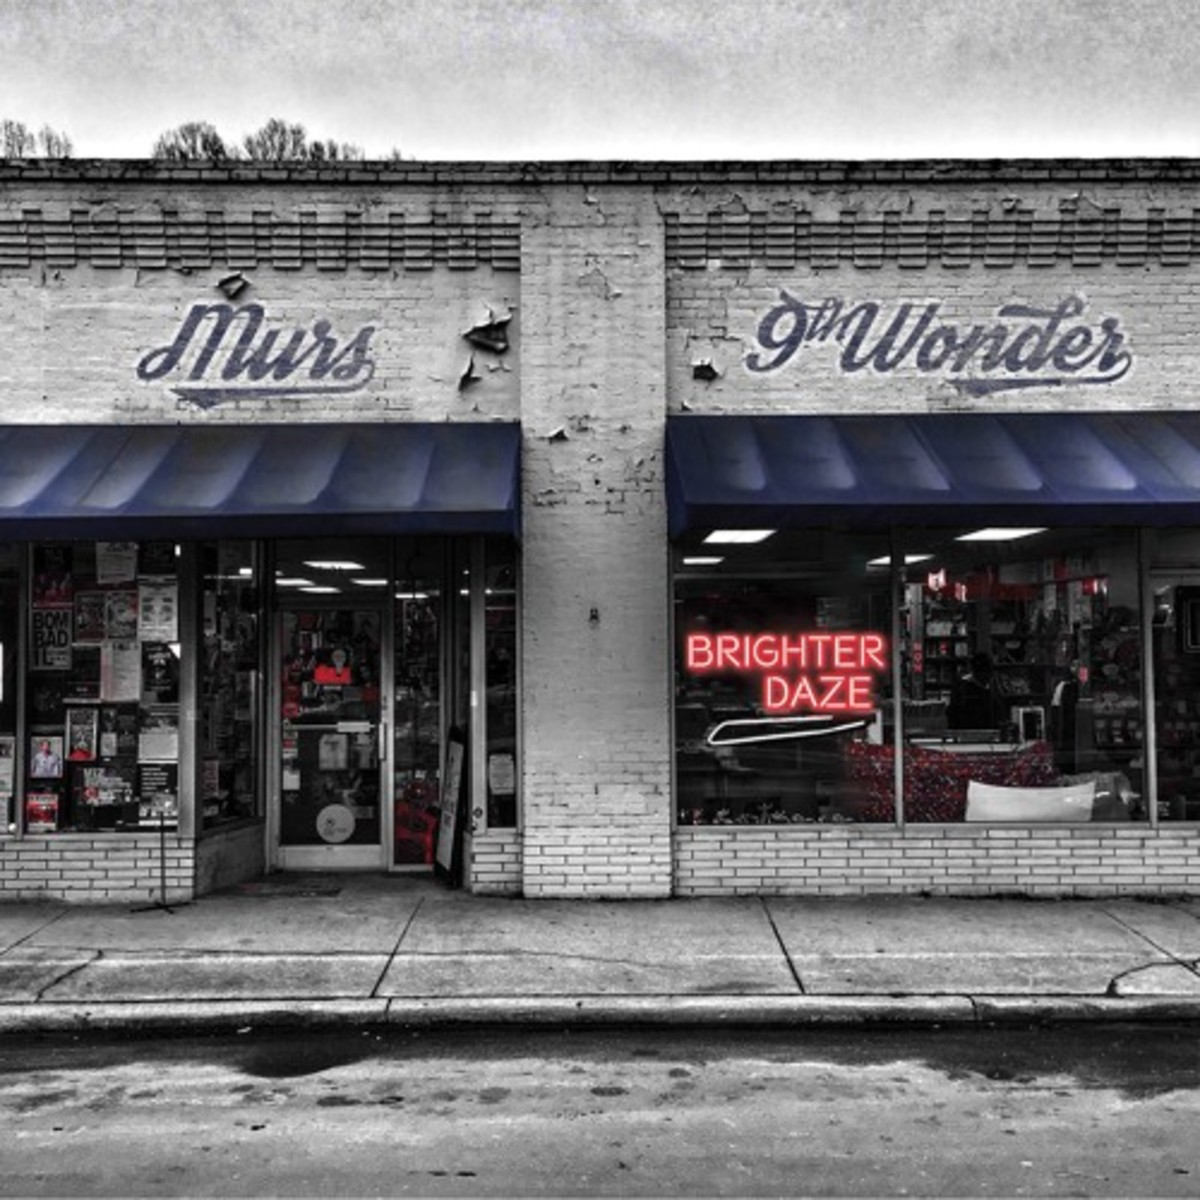 murs-9th-wonder-brighter-daze.jpg